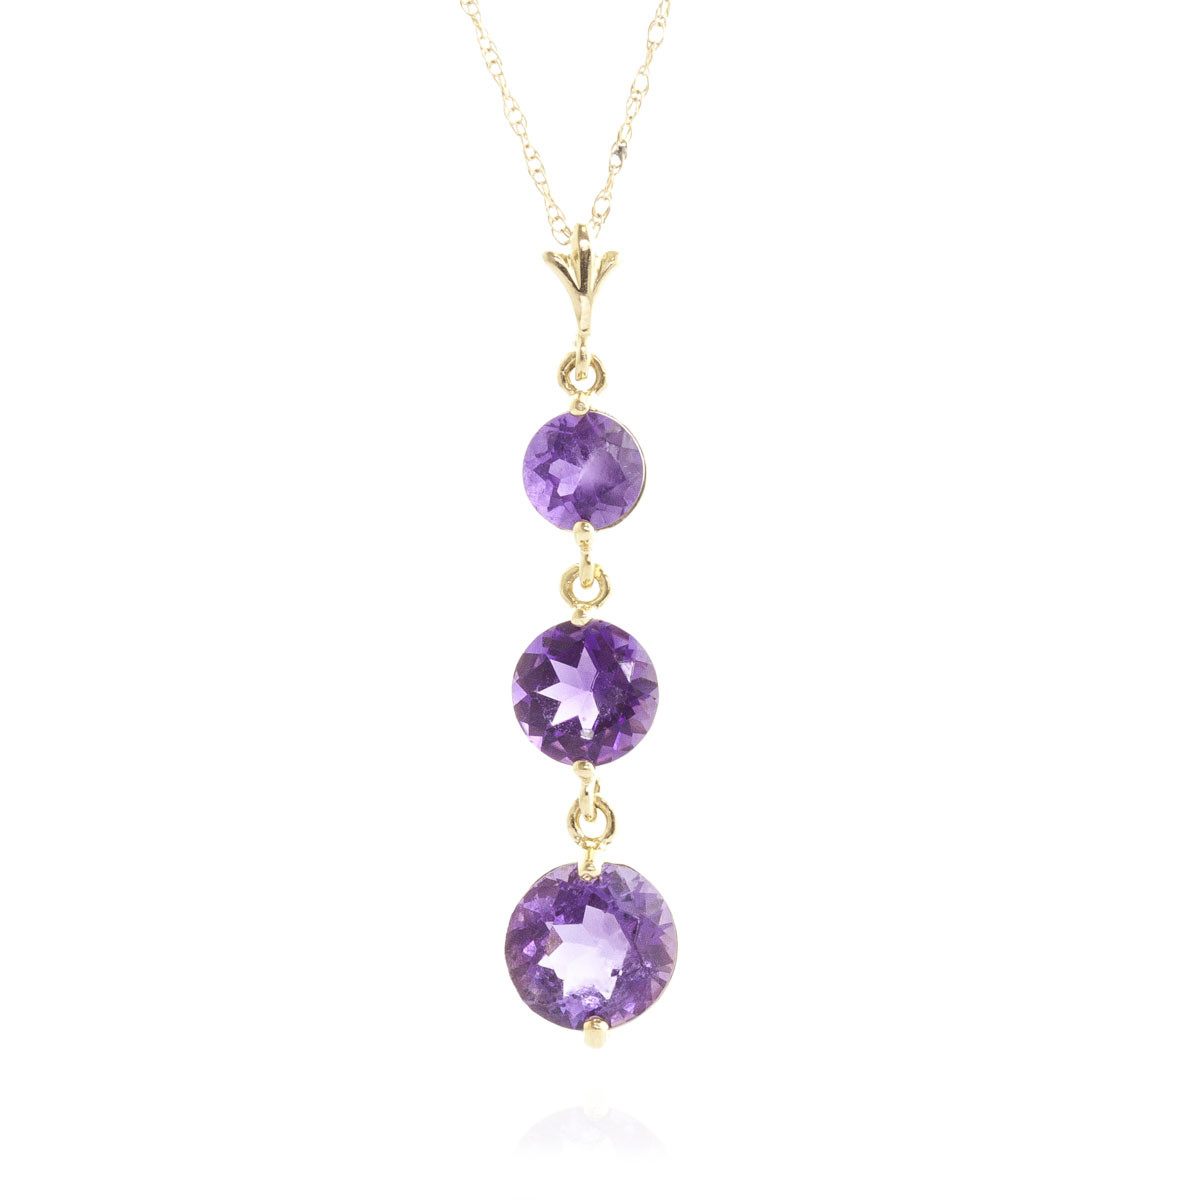 Amethyst Trinity Pendant Necklace 3.6 ctw in 9ct Gold